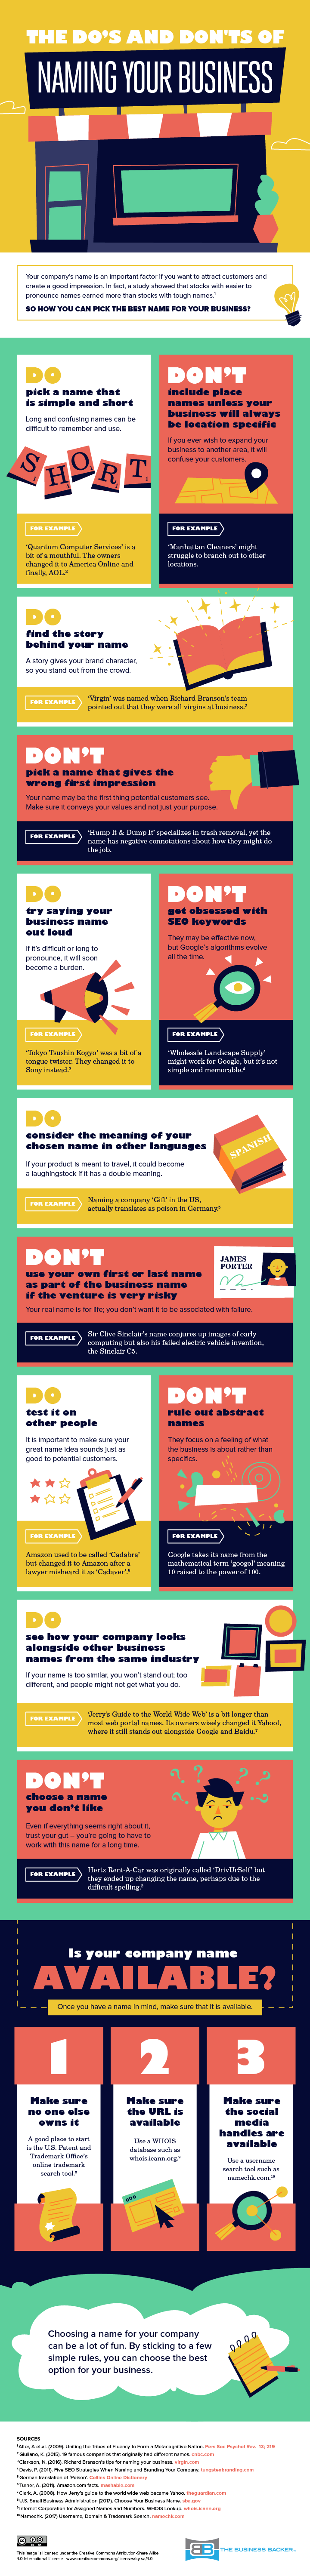 How to Name Your Business: Do's and Don'ts - Infographic